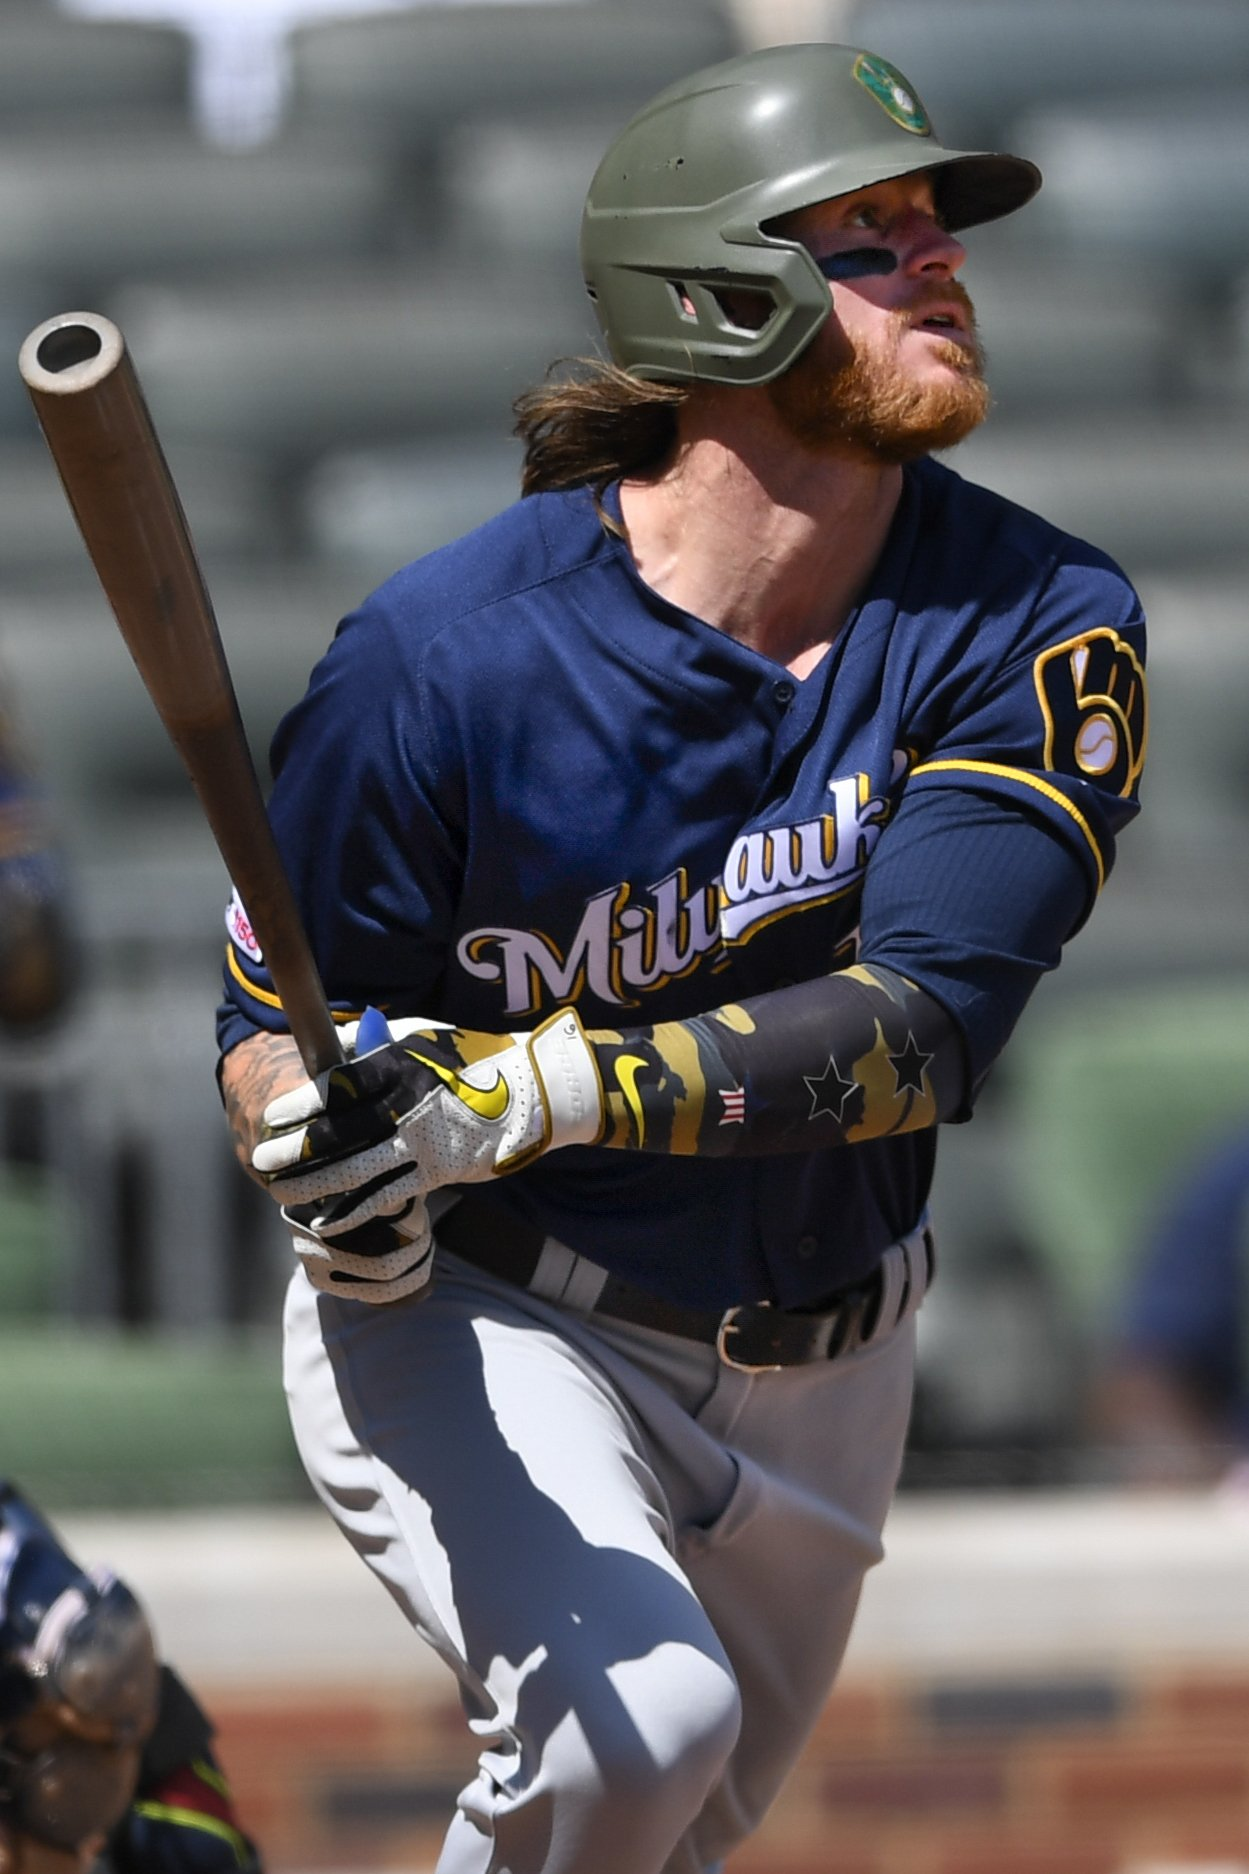 Gamel's 10th-inning homer lifts Brewers over Braves; Yelich, Hiura also hit HRs